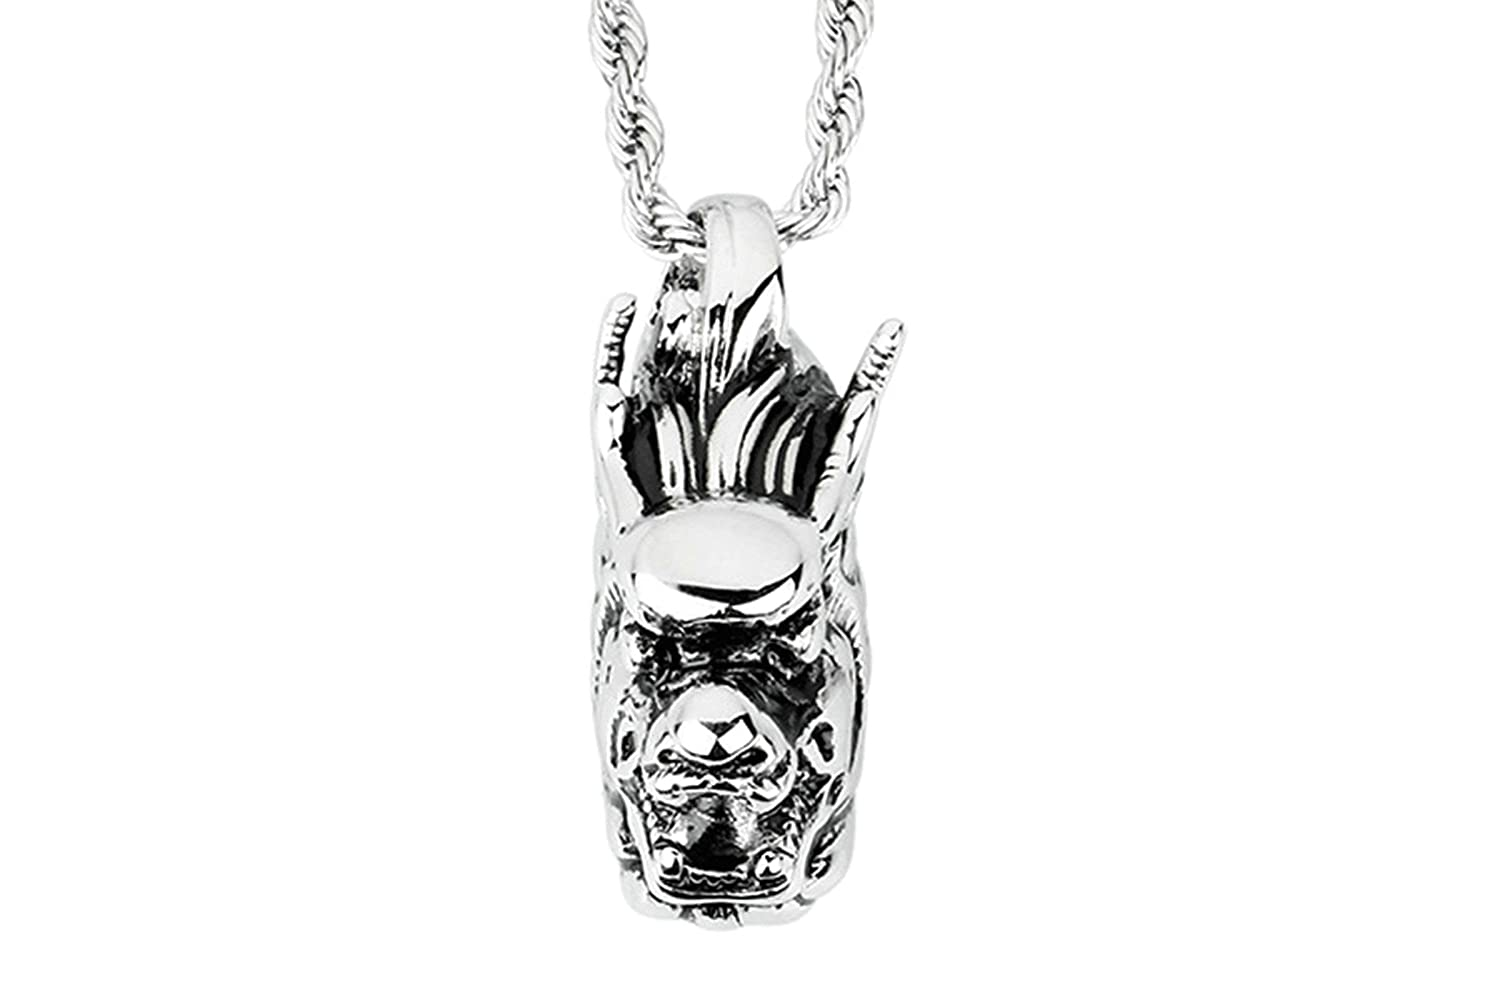 AMDXD Jewelry Stainless Steel Pendant Necklace Men Pendant Necklaces Chain Necklace